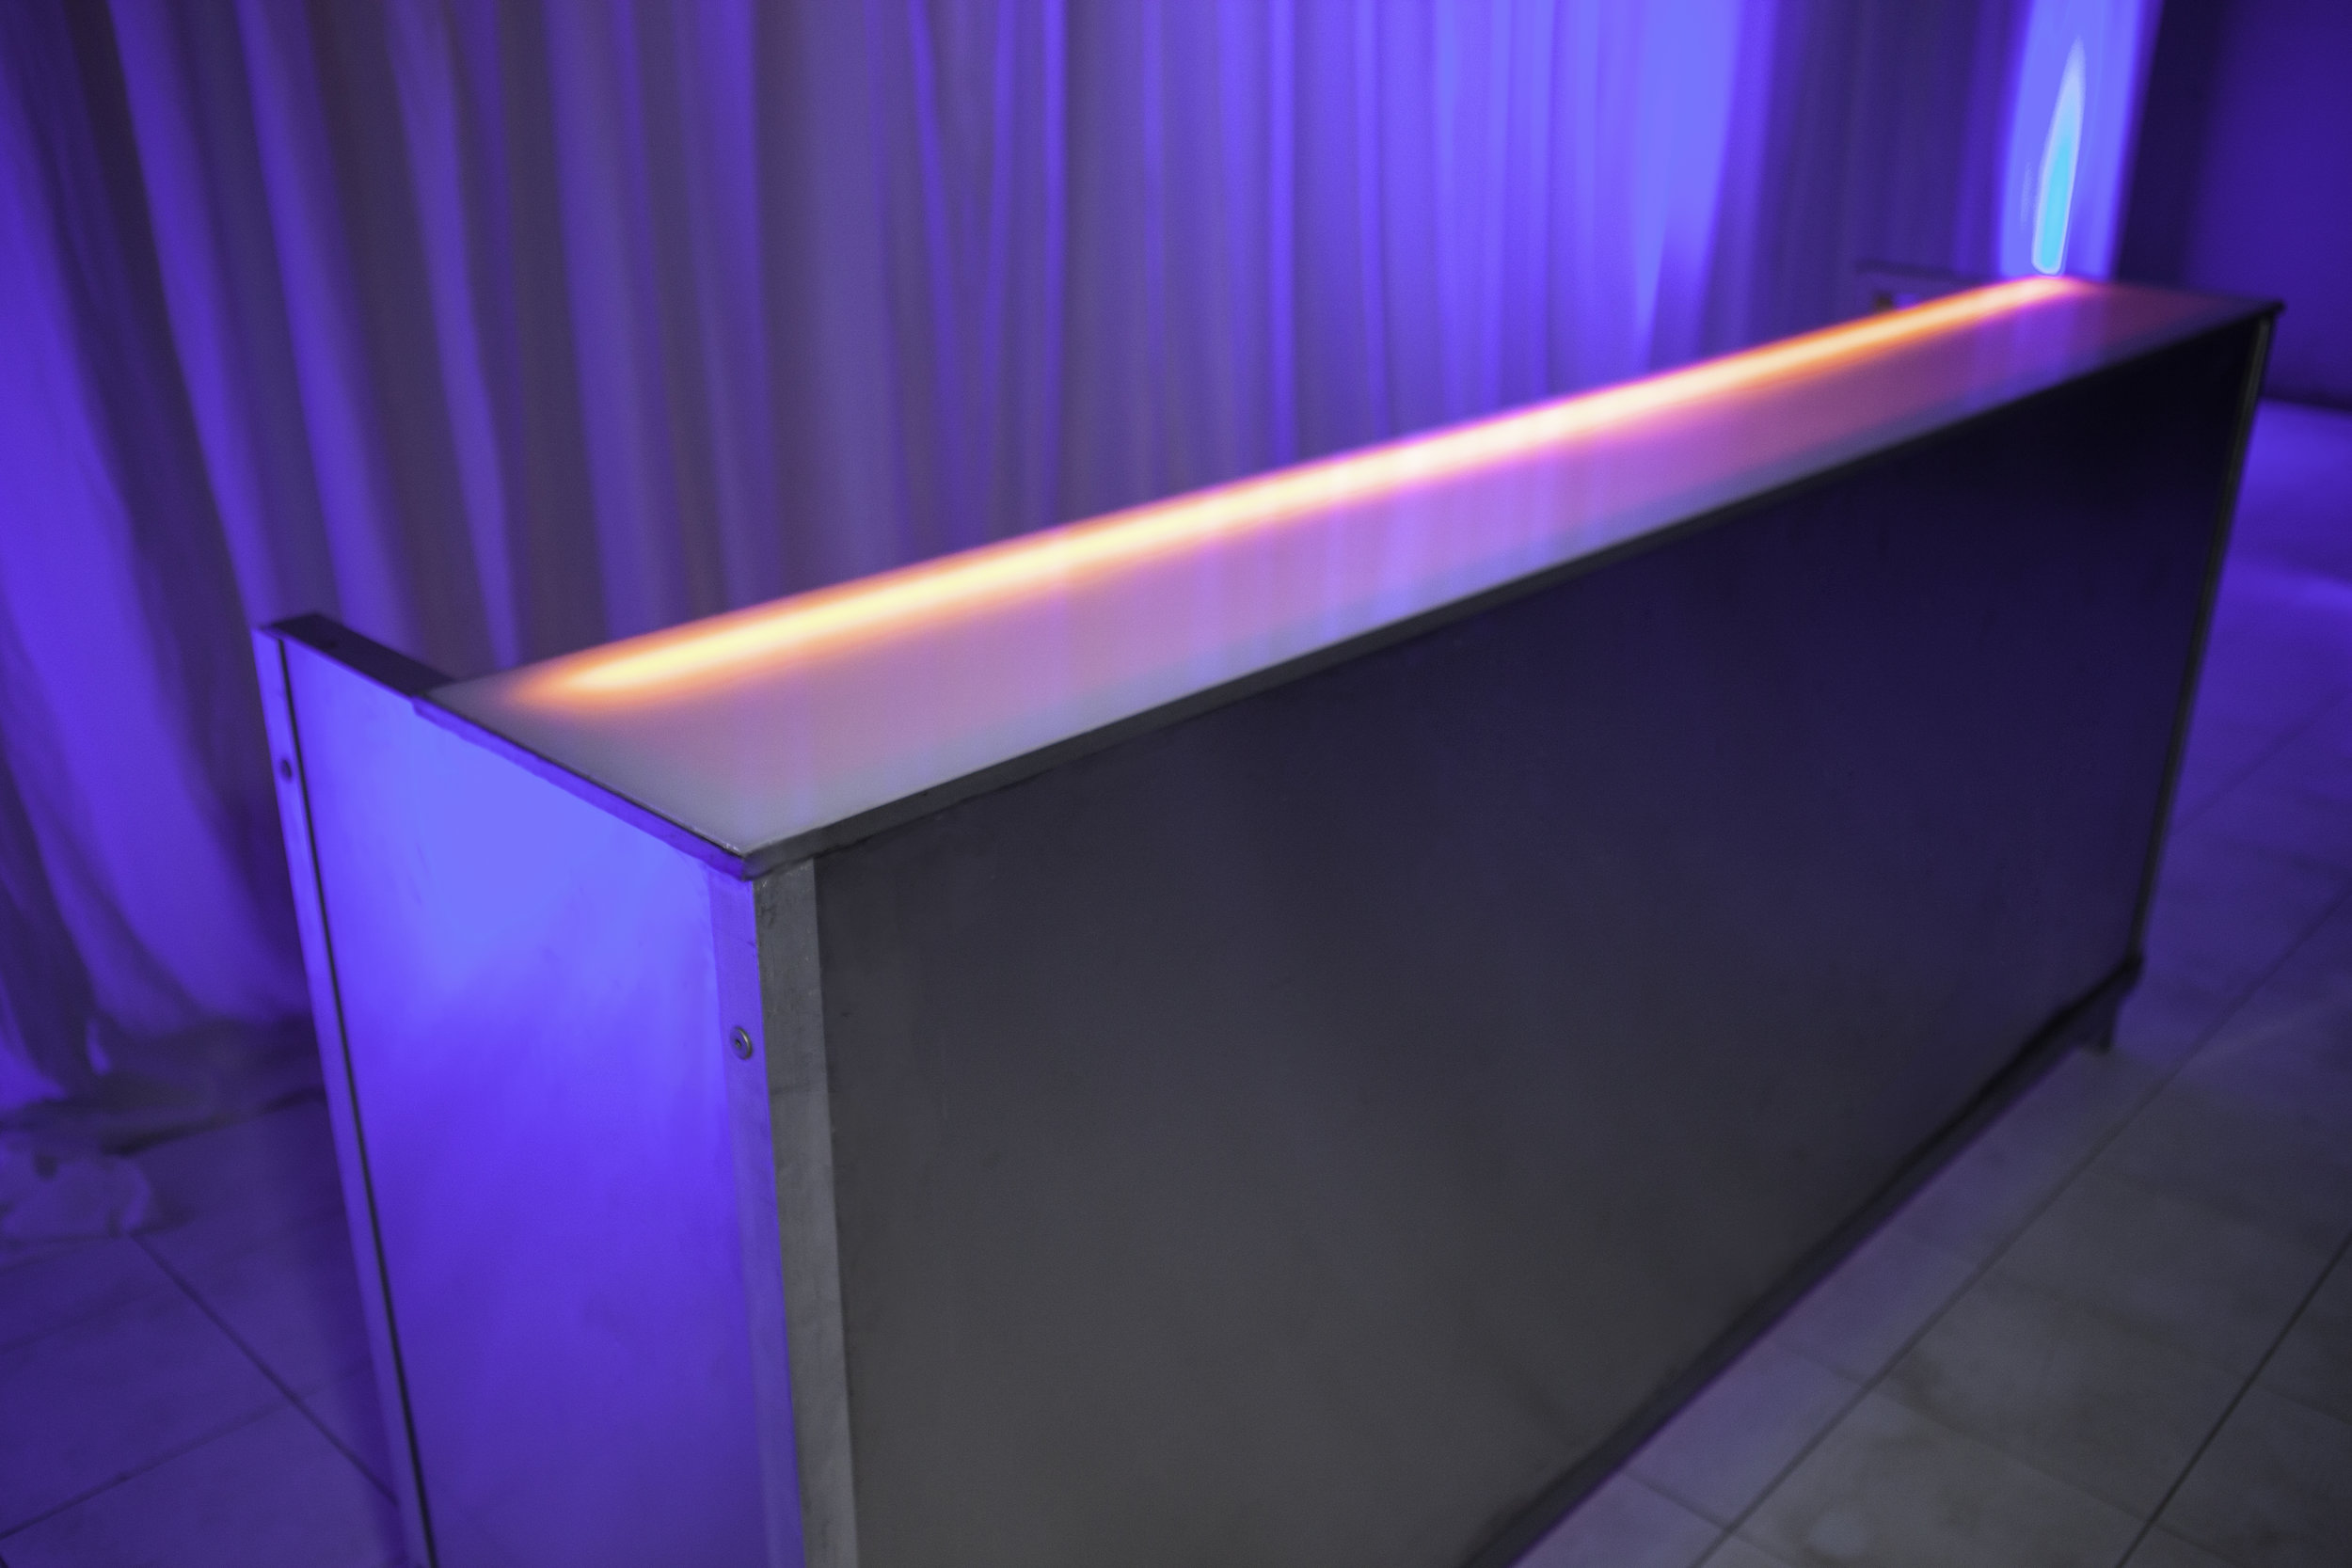 Bar- Silver Metal Bar LED with Shellf_3.jpg